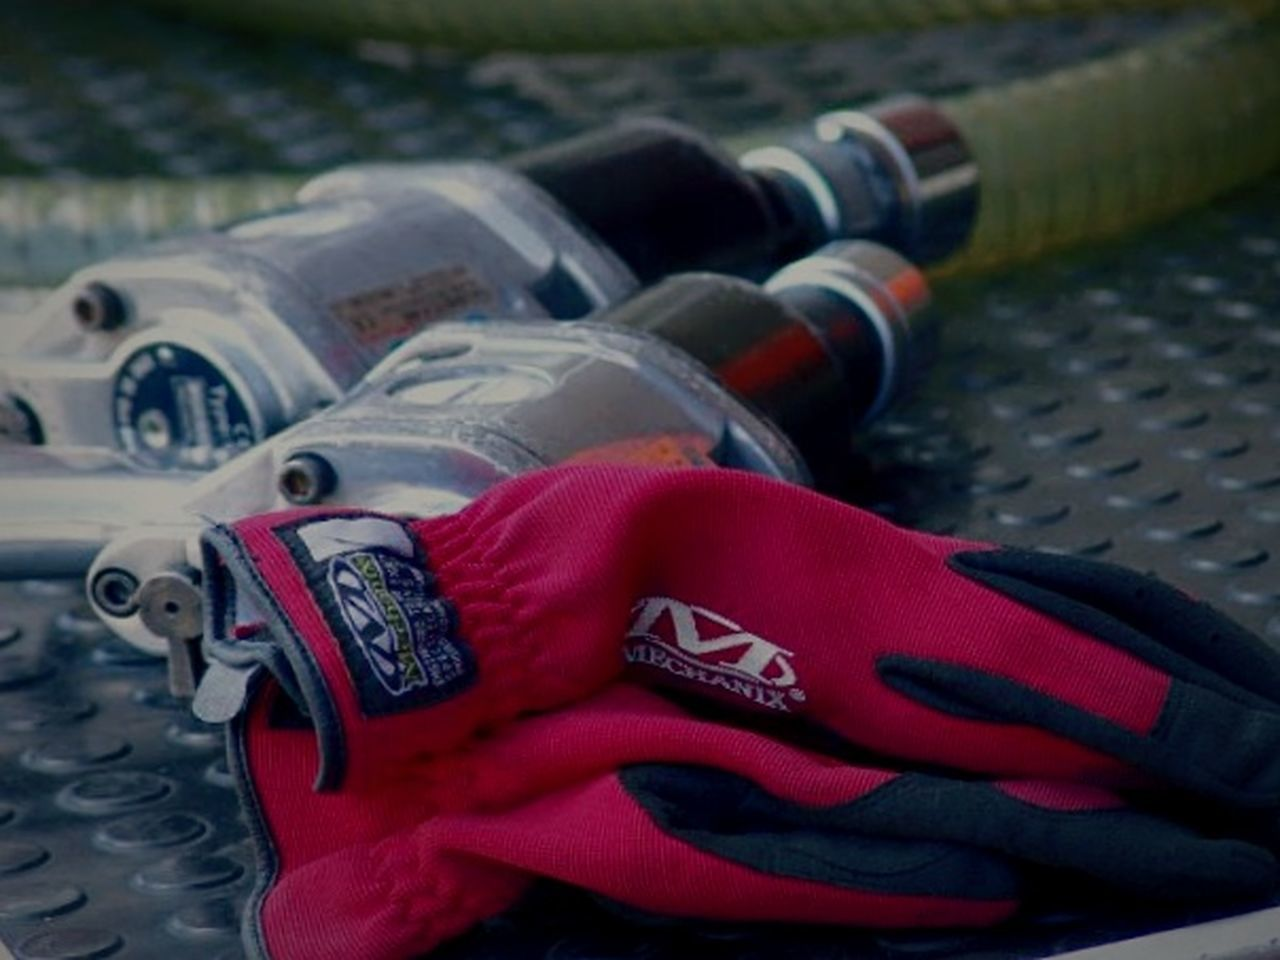 No People Outdoors Francorchamps Racing StillLifePhotography Gloves Unoccupied Racing Cars Red Gloves Close-up Day